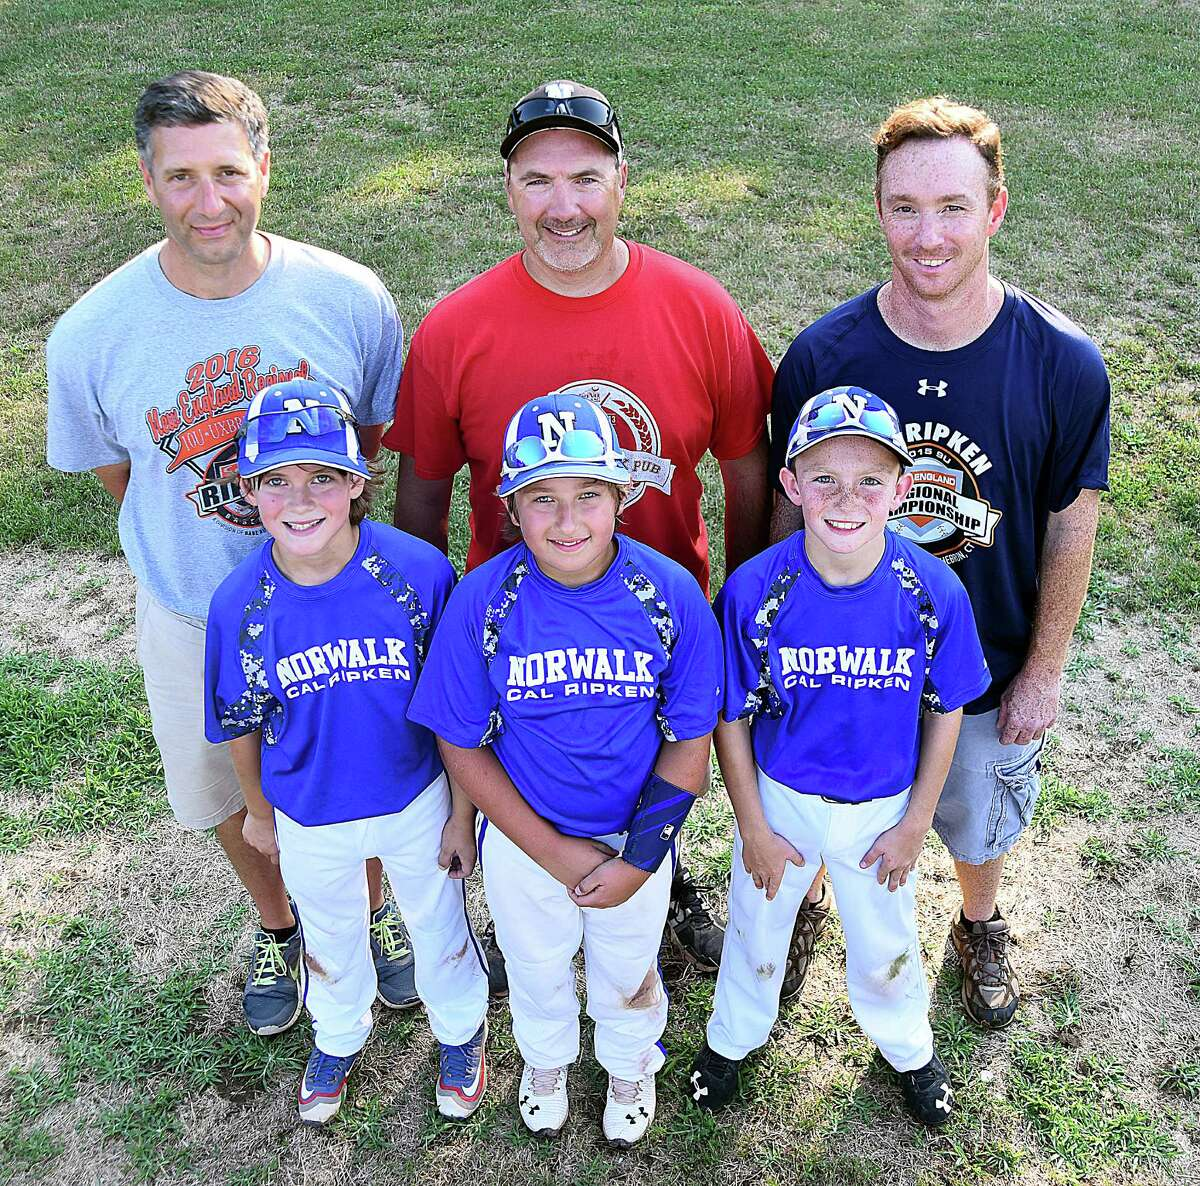 Father and sons have played a big role in the success of the Norwalk 10-year-old Cal Ripken All-Stars over the last two summer as the coaching staff of, back row from left, Scott Feinstein, Billy Lengyel and Randy Weiss have put together a summer to remember for a team that includes their sons, front row, from right, Henry Feinstein, Sean Lengyel and Brian Weiss. The Ripken 10s head to Palm Beach Gardens, Fla., next week to play in the Cal Ripken 10-year-old World Series.